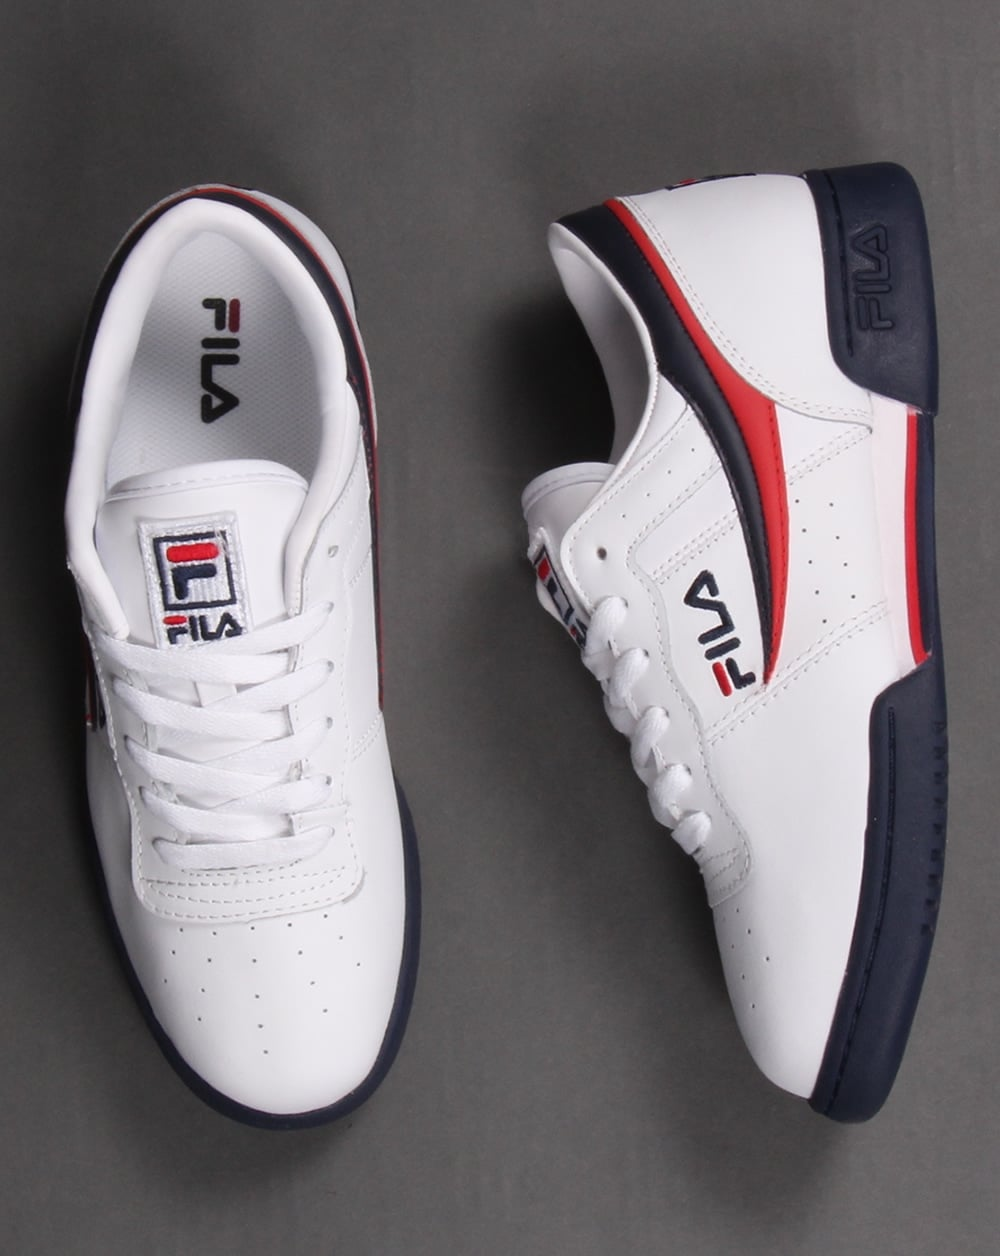 Original 80s shoes Trainers Fila Vintage Fitness Whitenavyred SO5xwwBfq